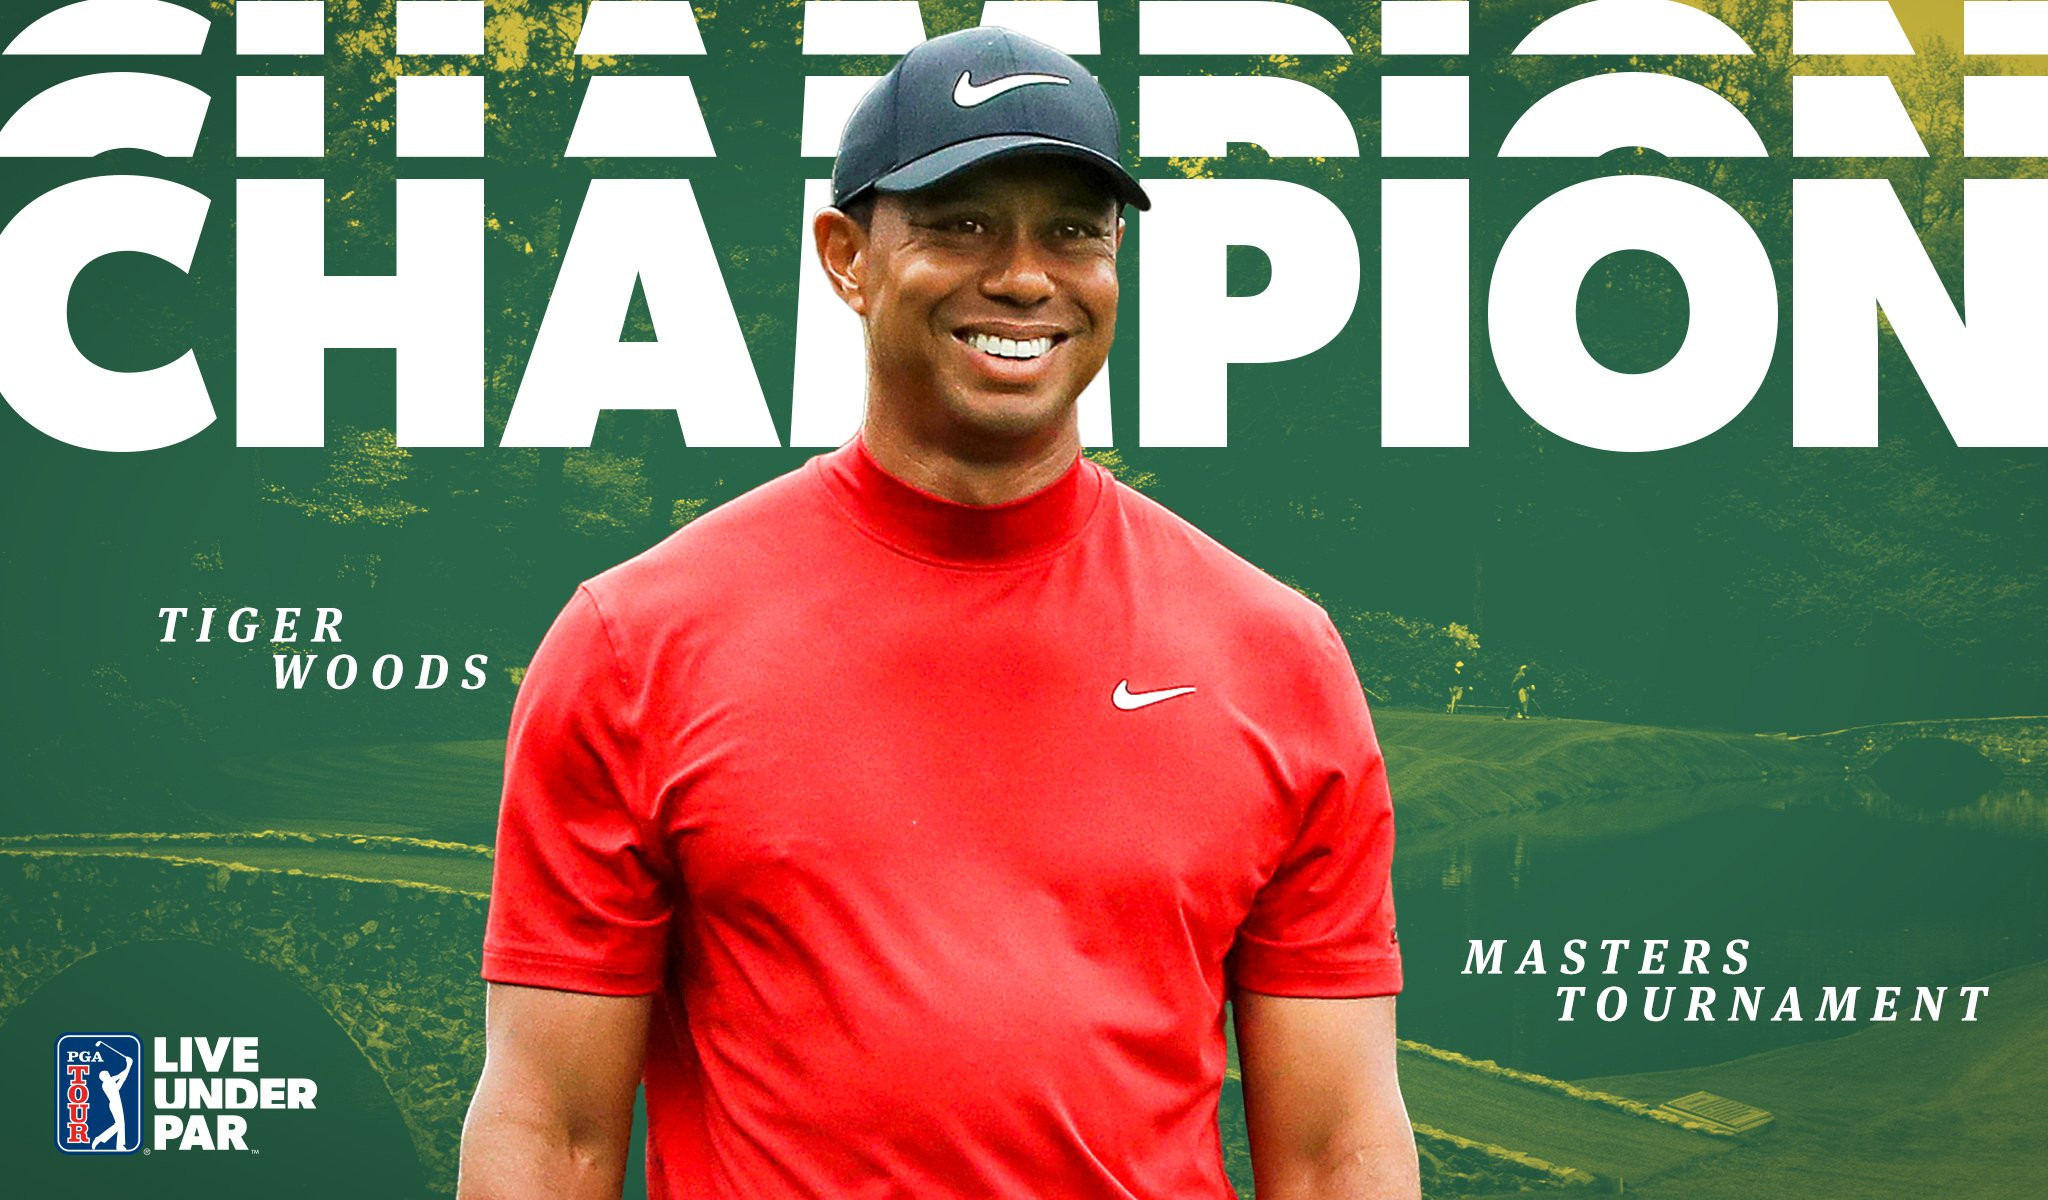 Your 2019 Masters Champion, @TigerWoods. �� https://t.co/8BDZ0cUURk